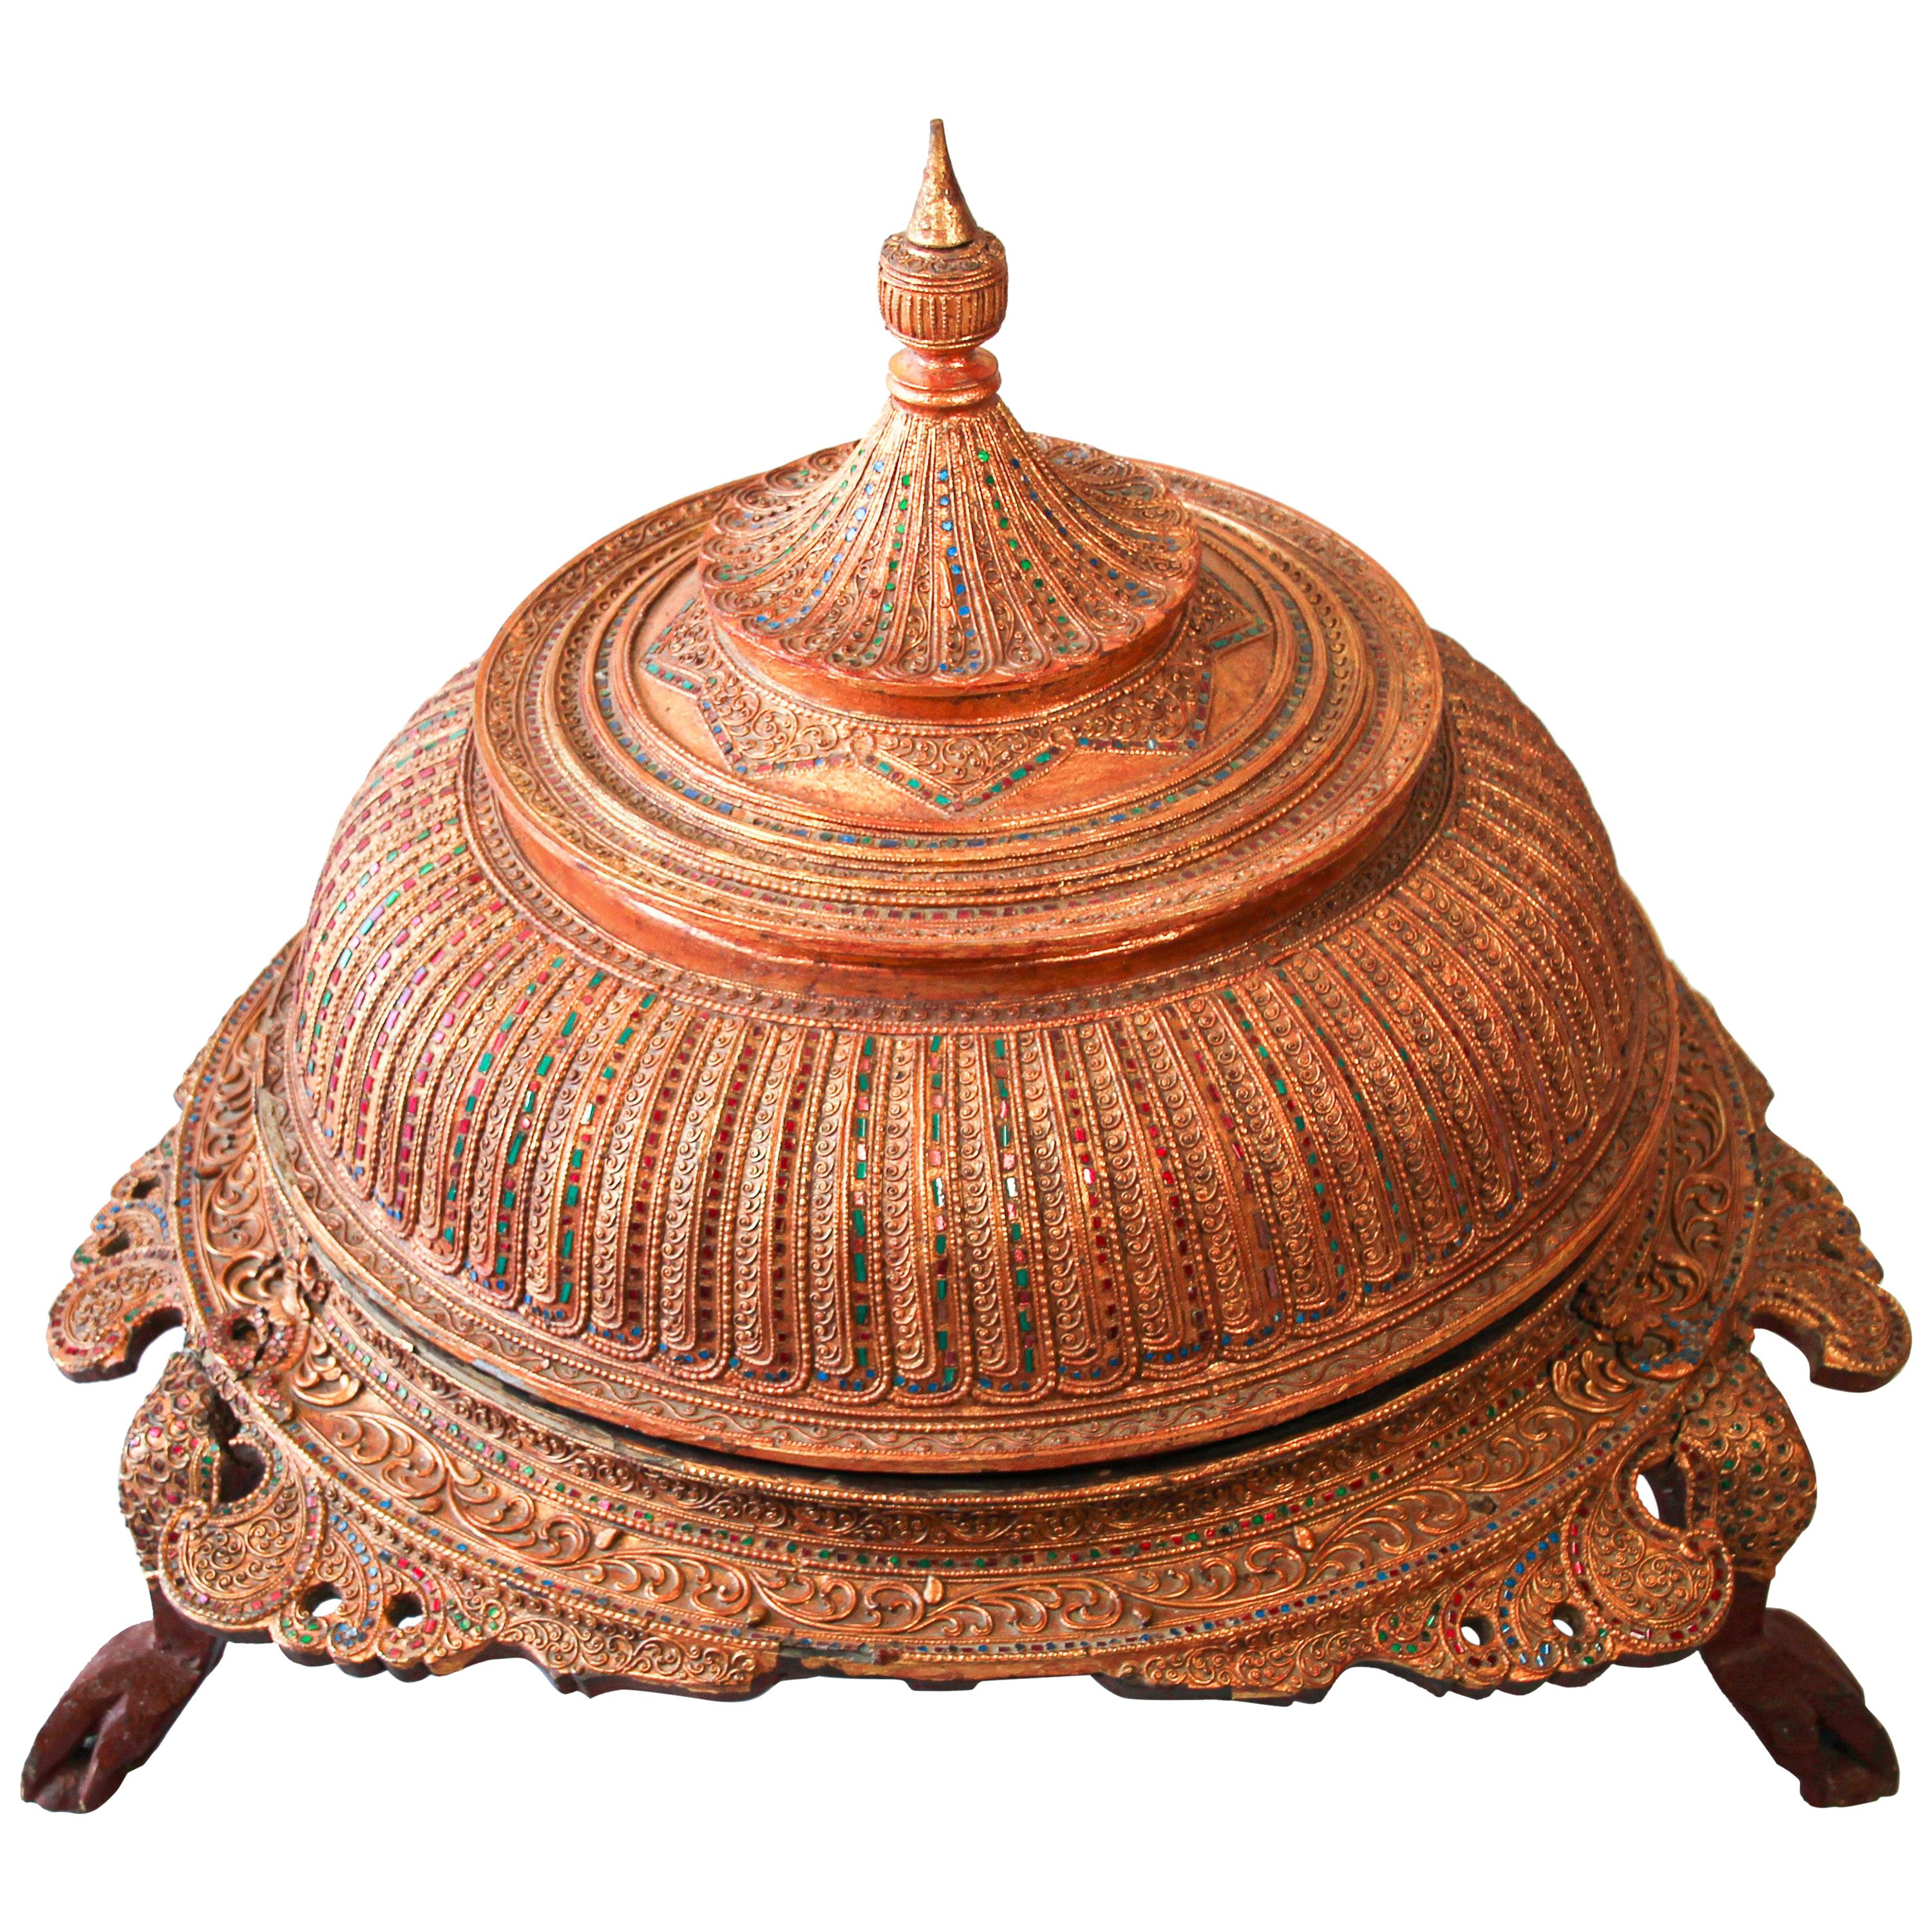 Large Burmese Gilt and Lacquered Wood Temple Offering Vessel